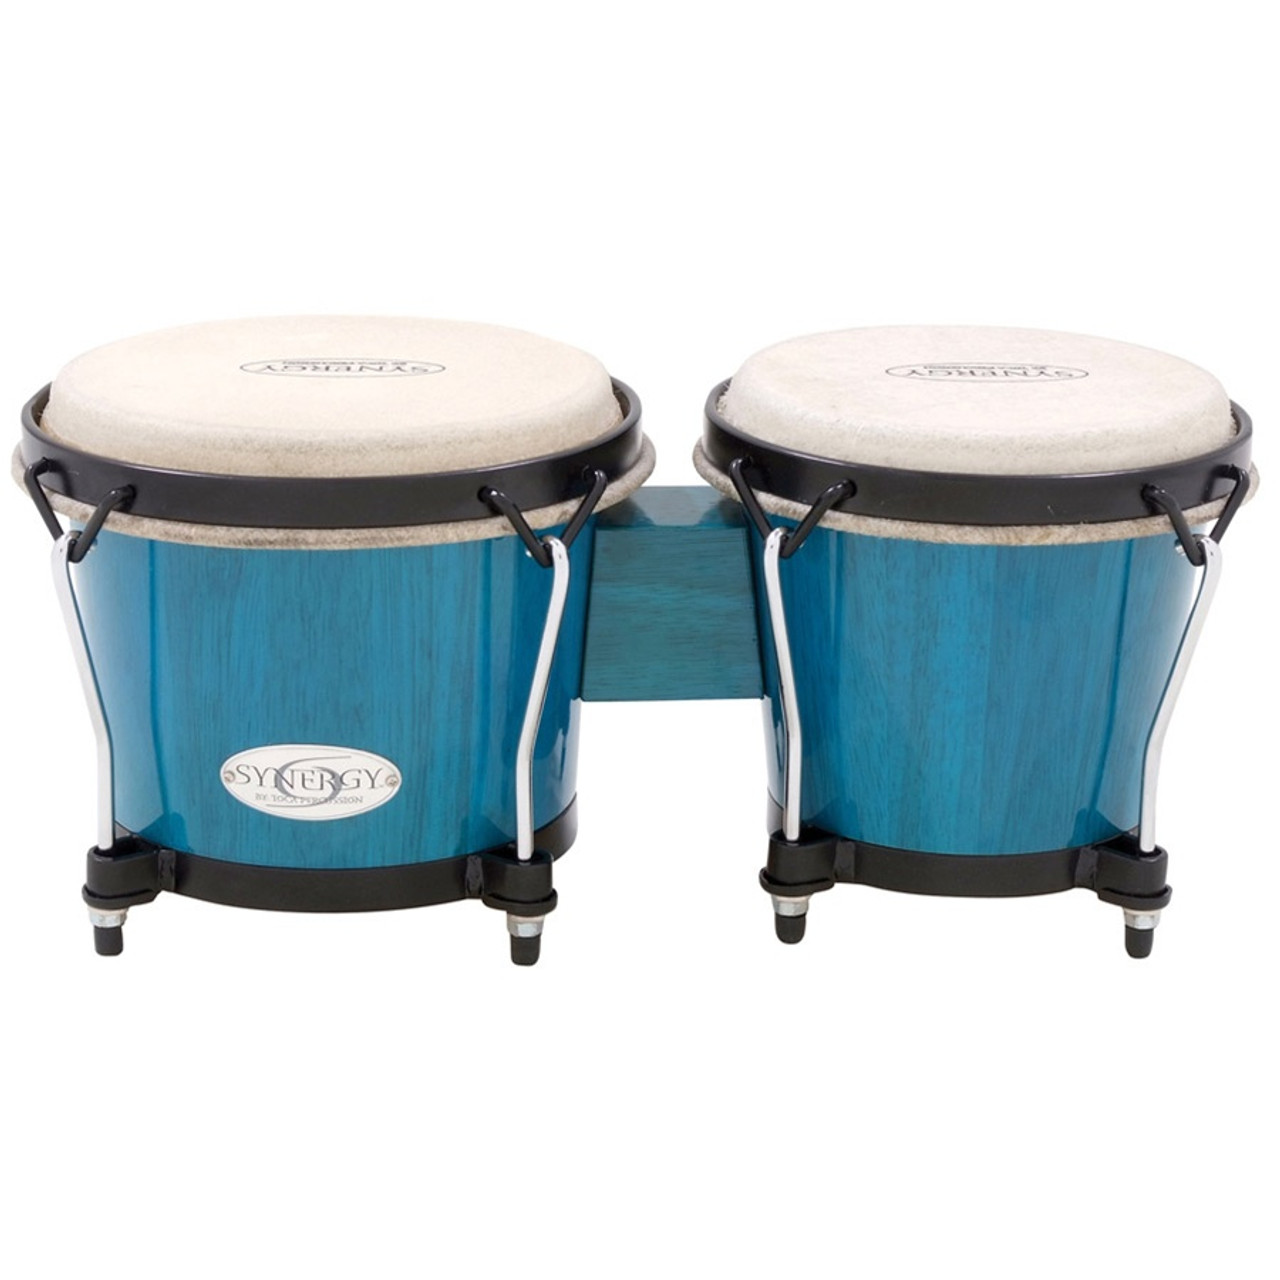 WHITE TOCA SYNERGY SYNTHETIC BONGO DRUMS PERCUSSION